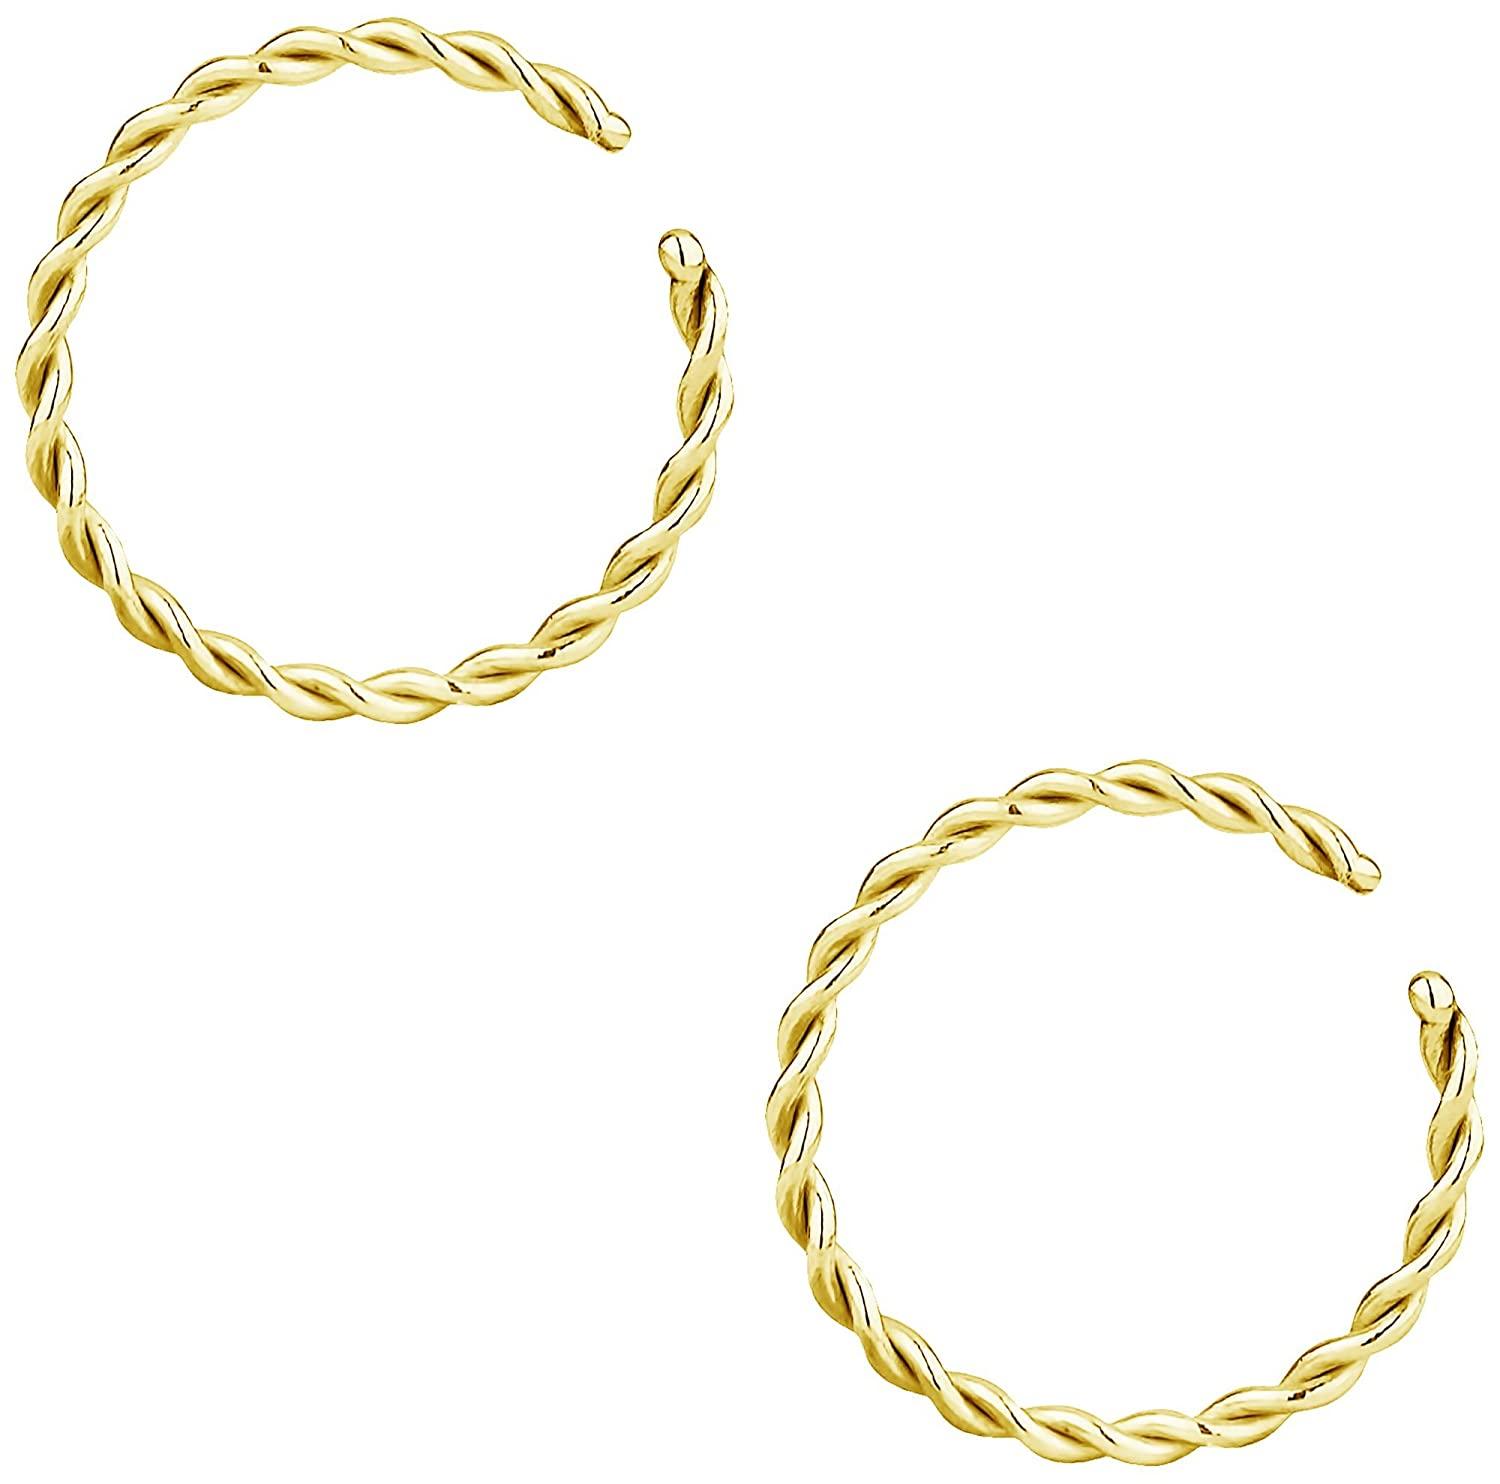 Forbidden Body Jewelry 14g-20g Set of Surgical Steel Braided Hoops for Pierced and Fake Nose & Cartilage Piercings FBJ-MN1675